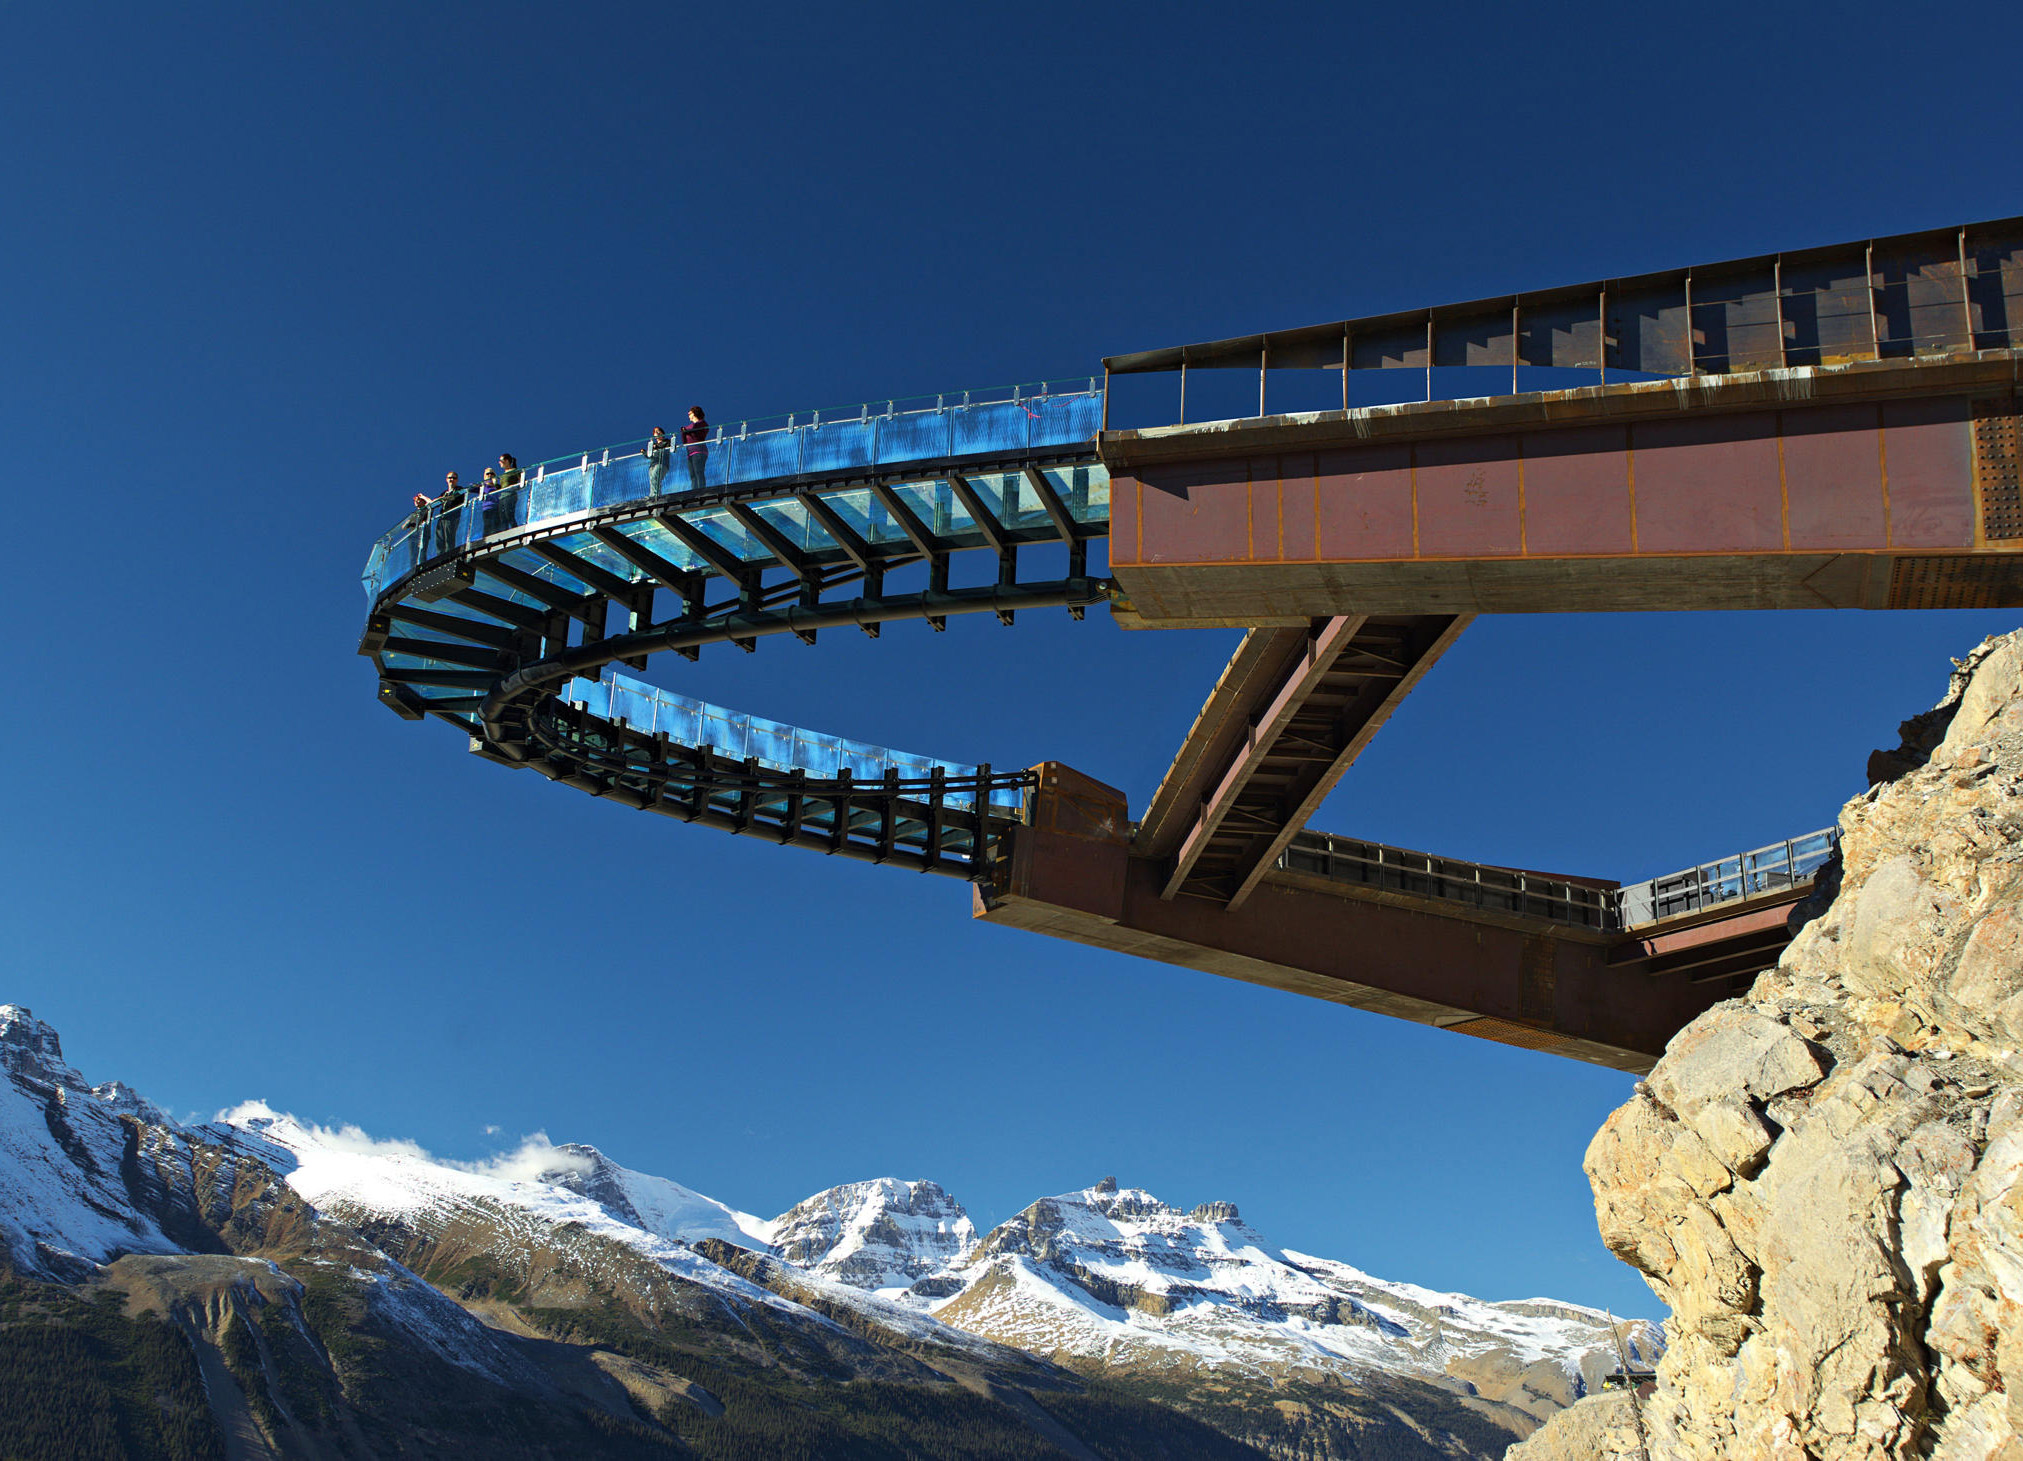 futuristic-attractions-glacier-skywalk